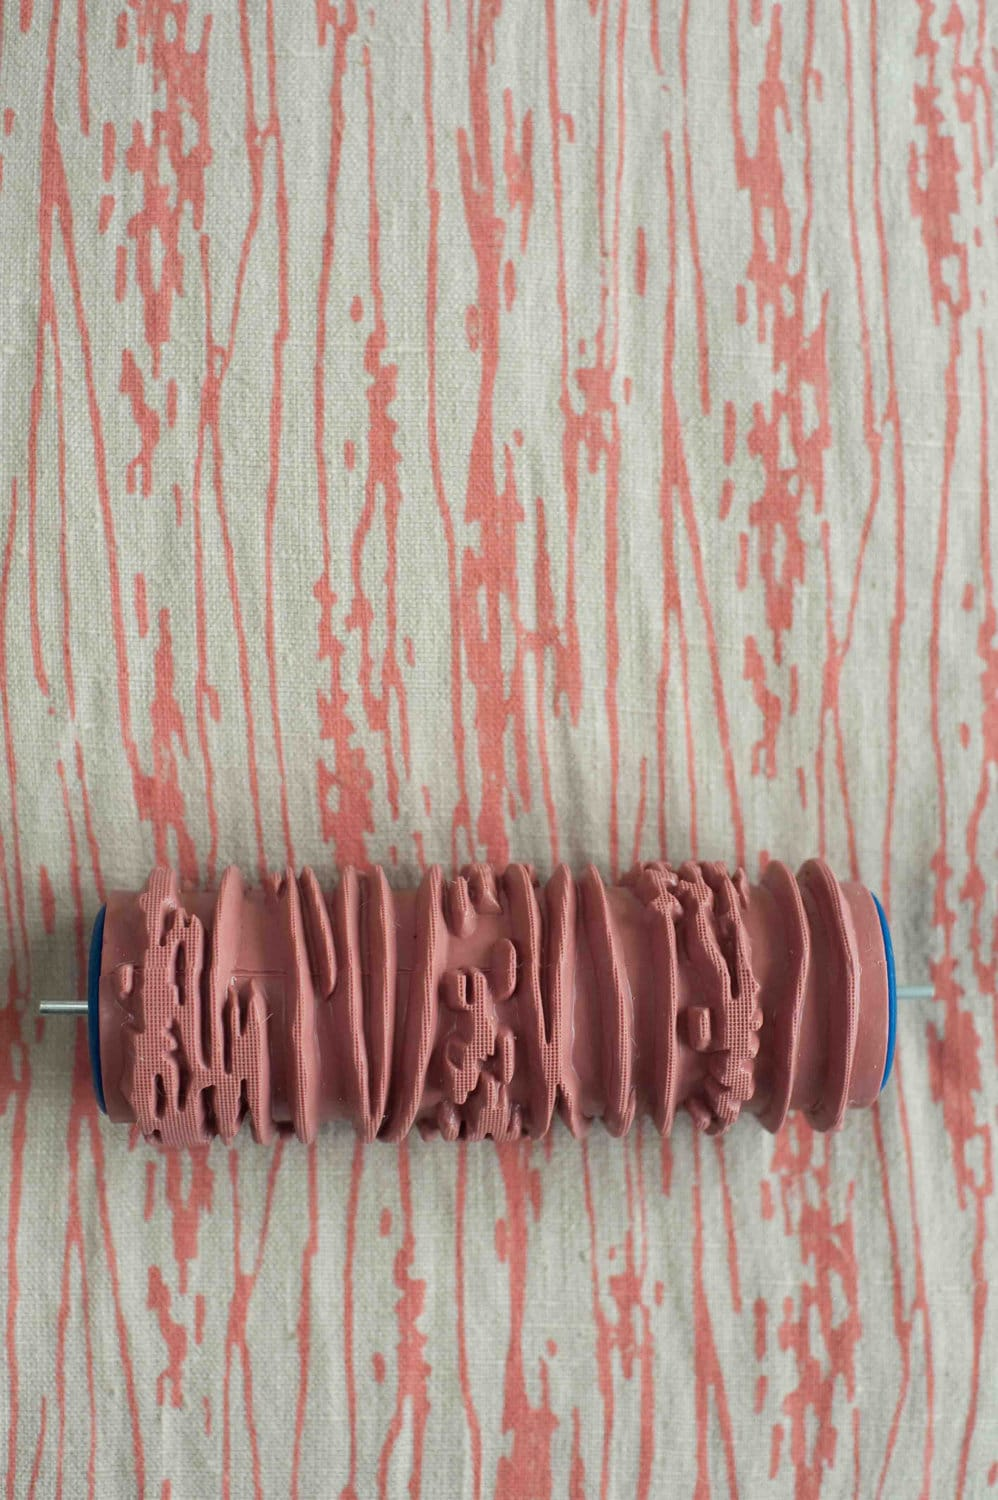 Wallpaper Paint: The Paint Roller That Creates A Wallpaper